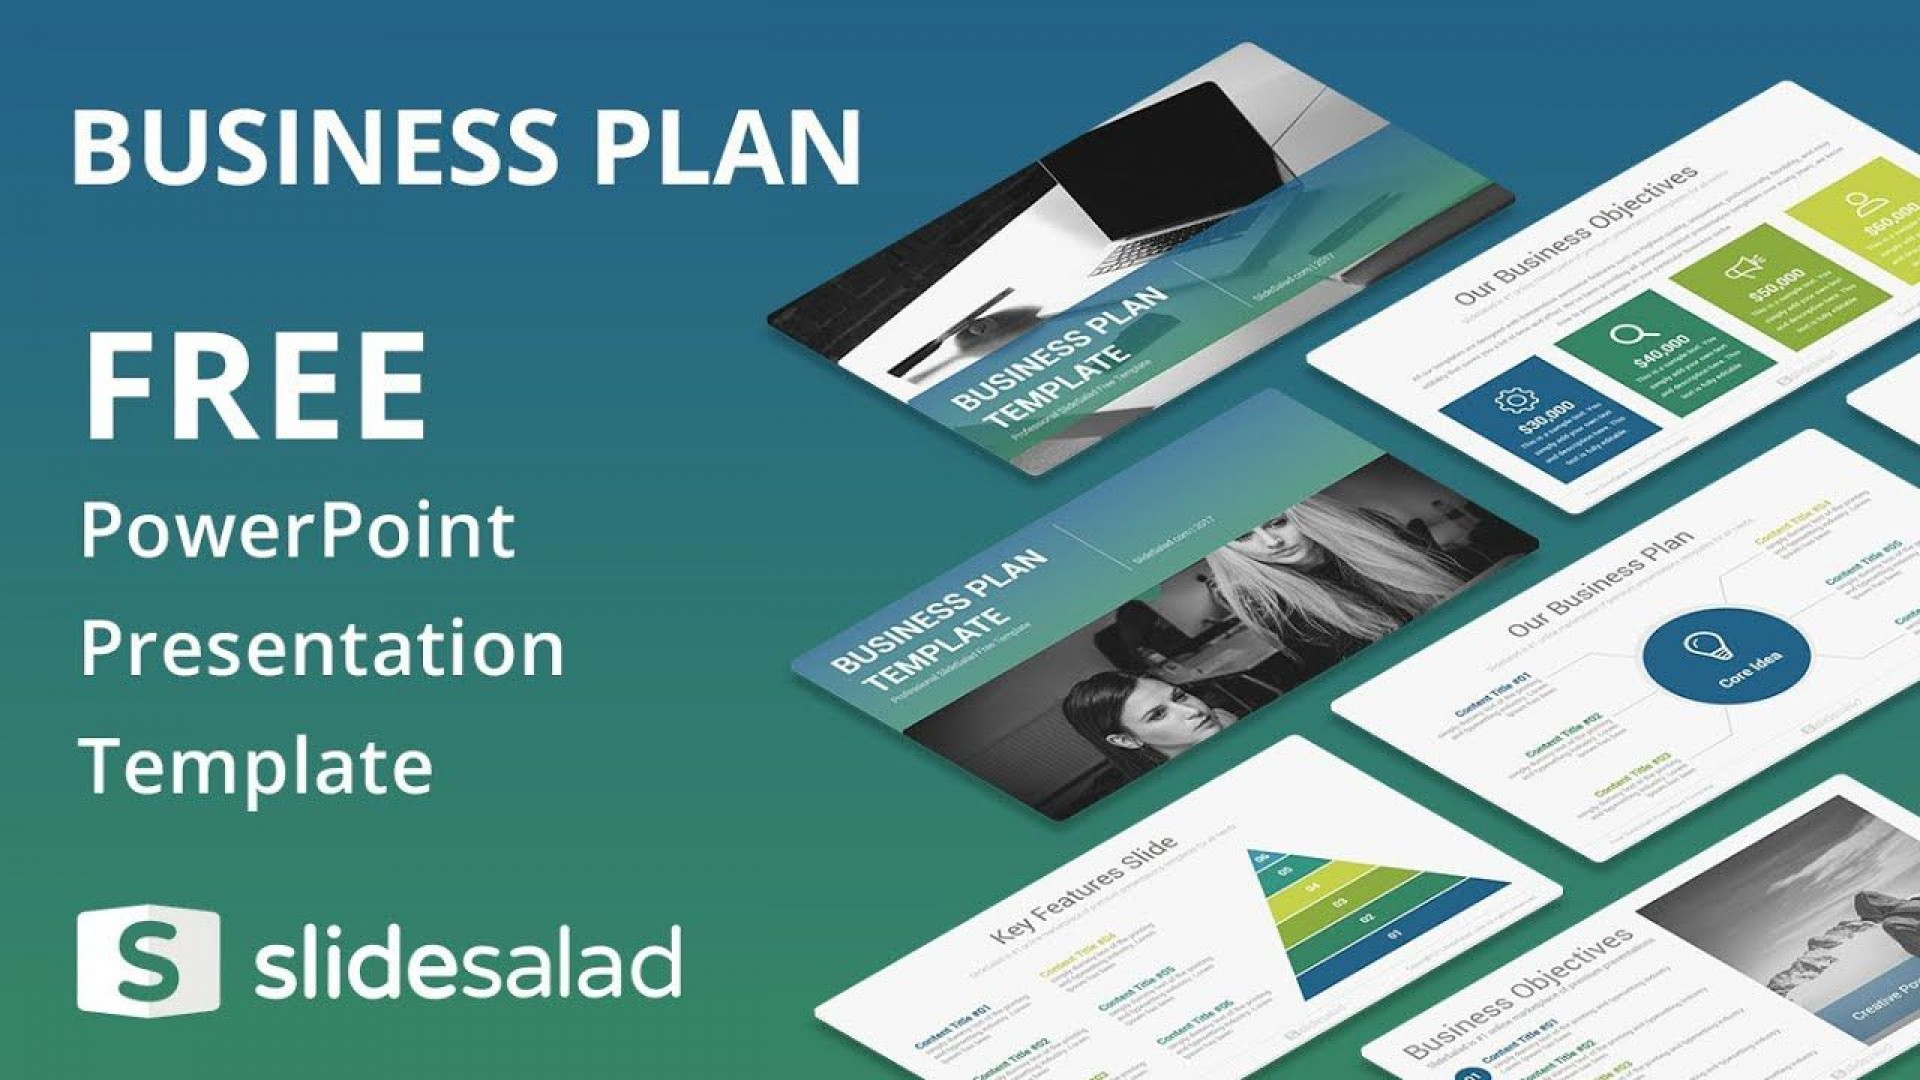 008 Unbelievable Free Busines Plan Powerpoint Template Download Image  Modern Ultimate1920